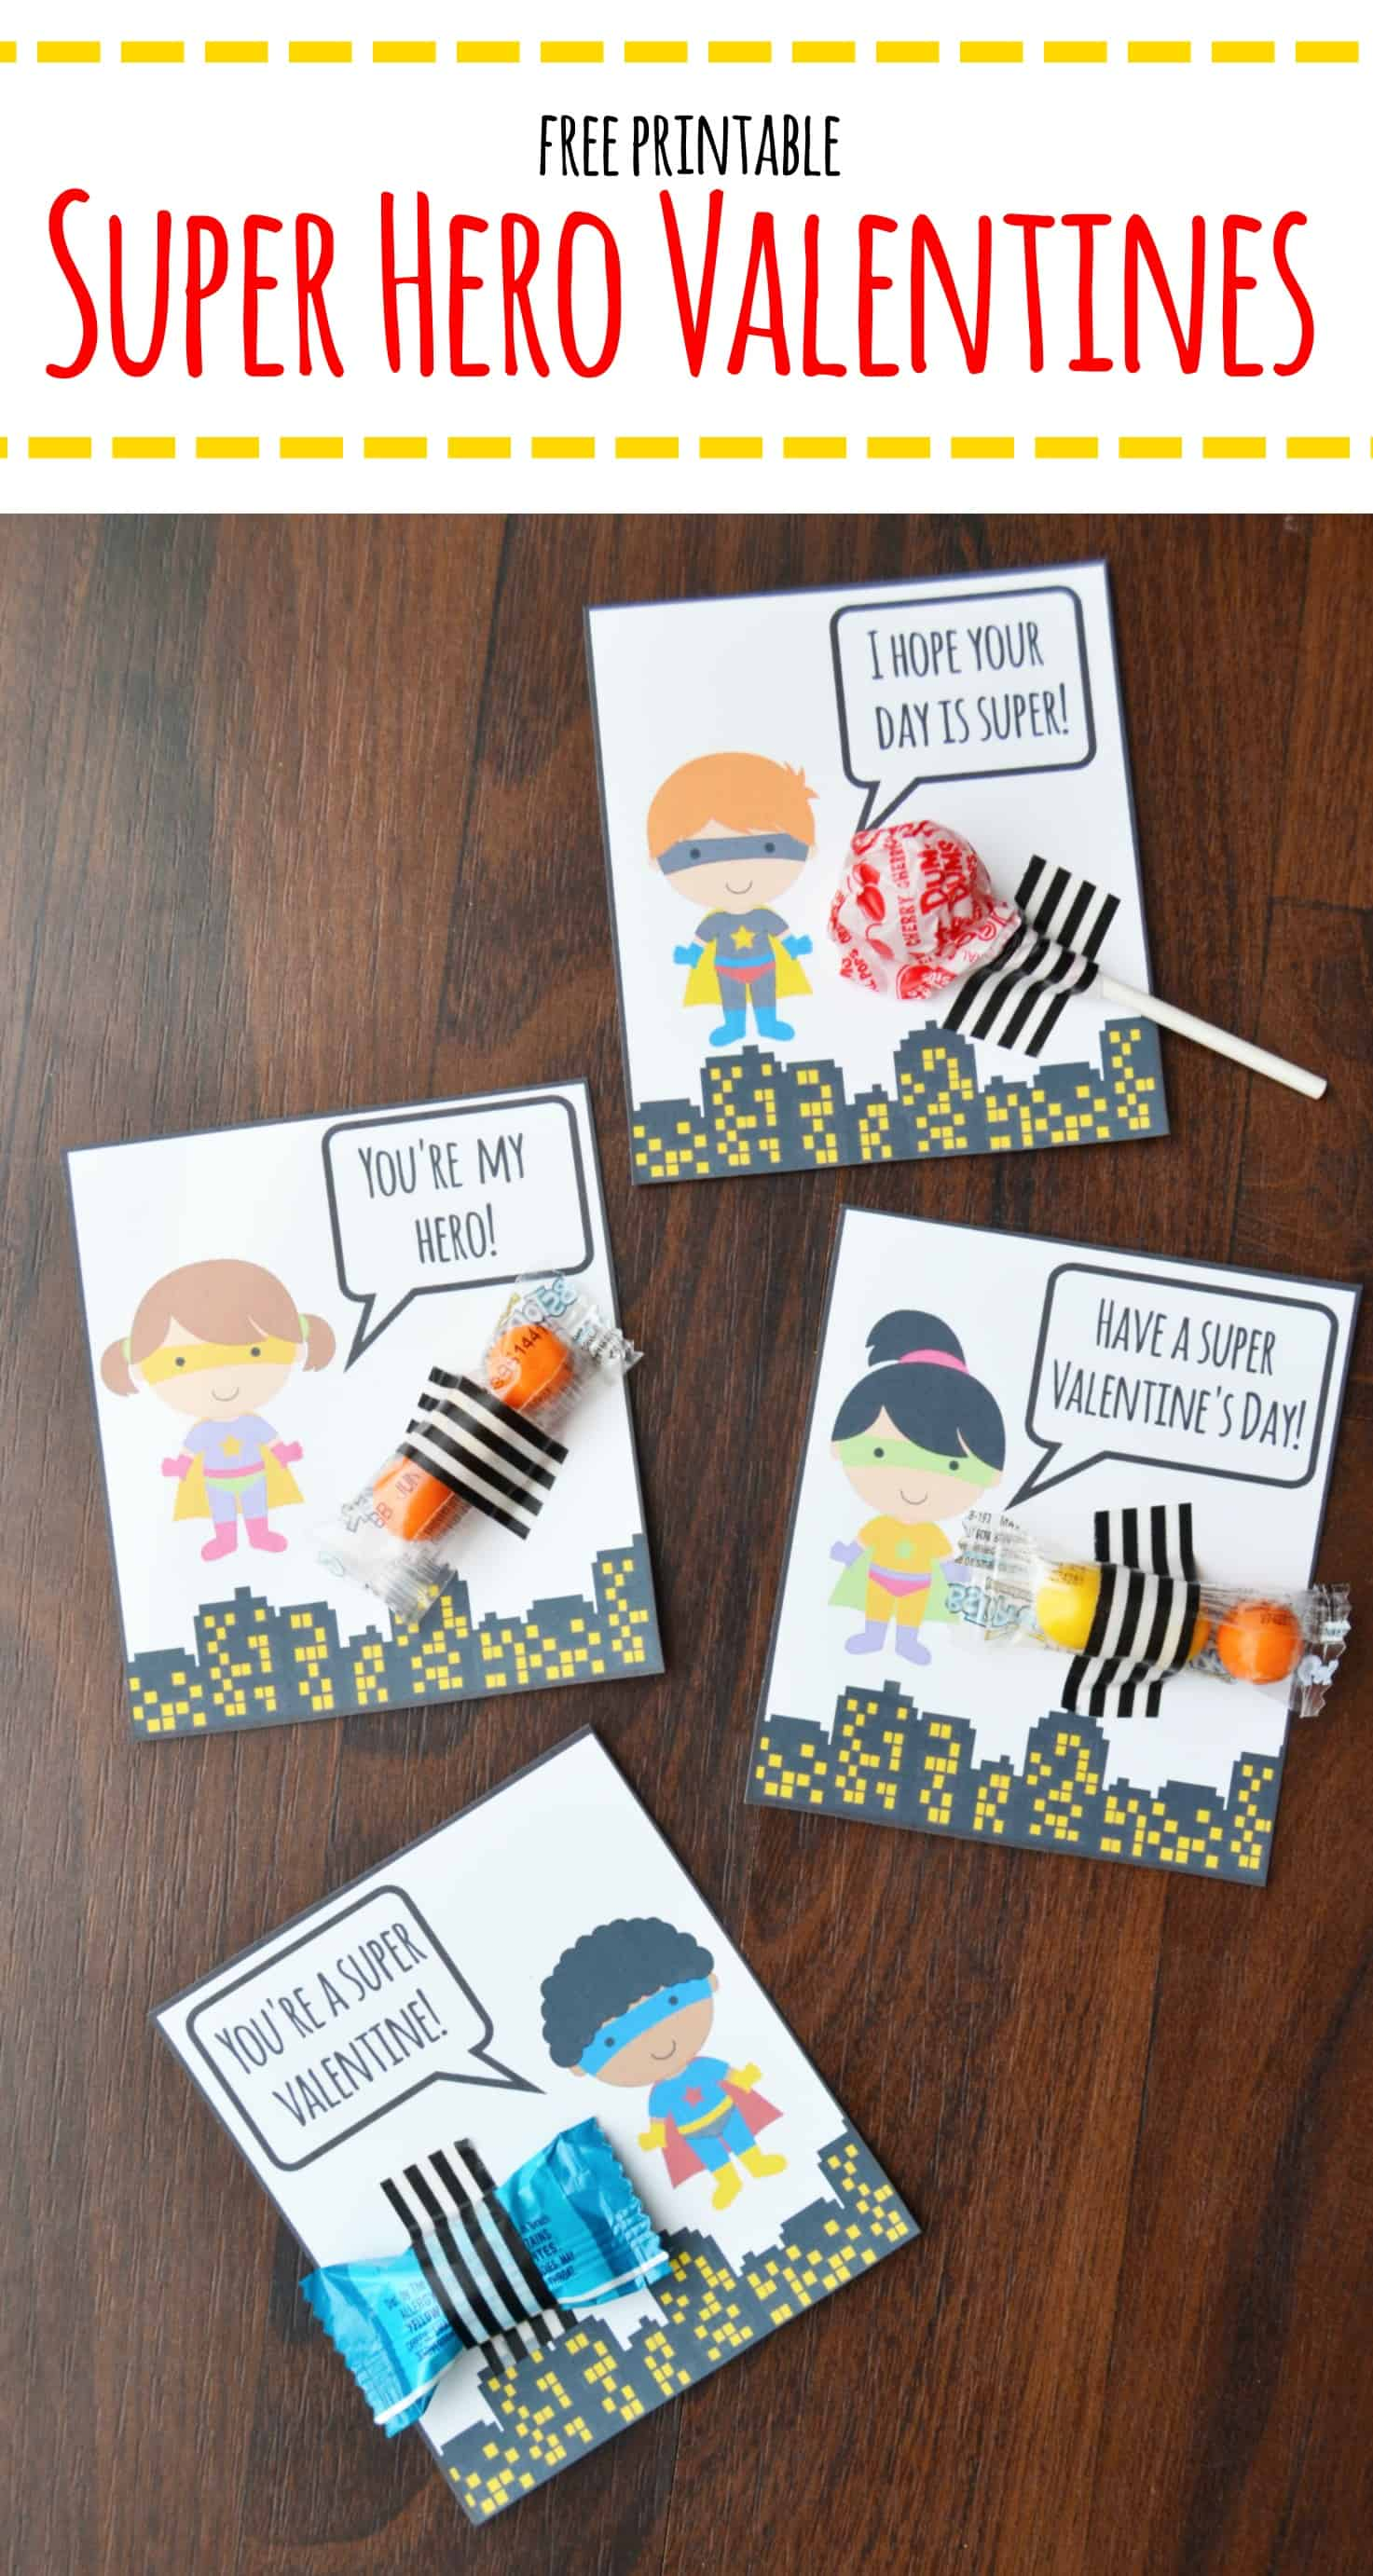 Valentine's Day is coming up! I have some fun printable super hero valentines for you all. These free printables are perfect for your little super hero.